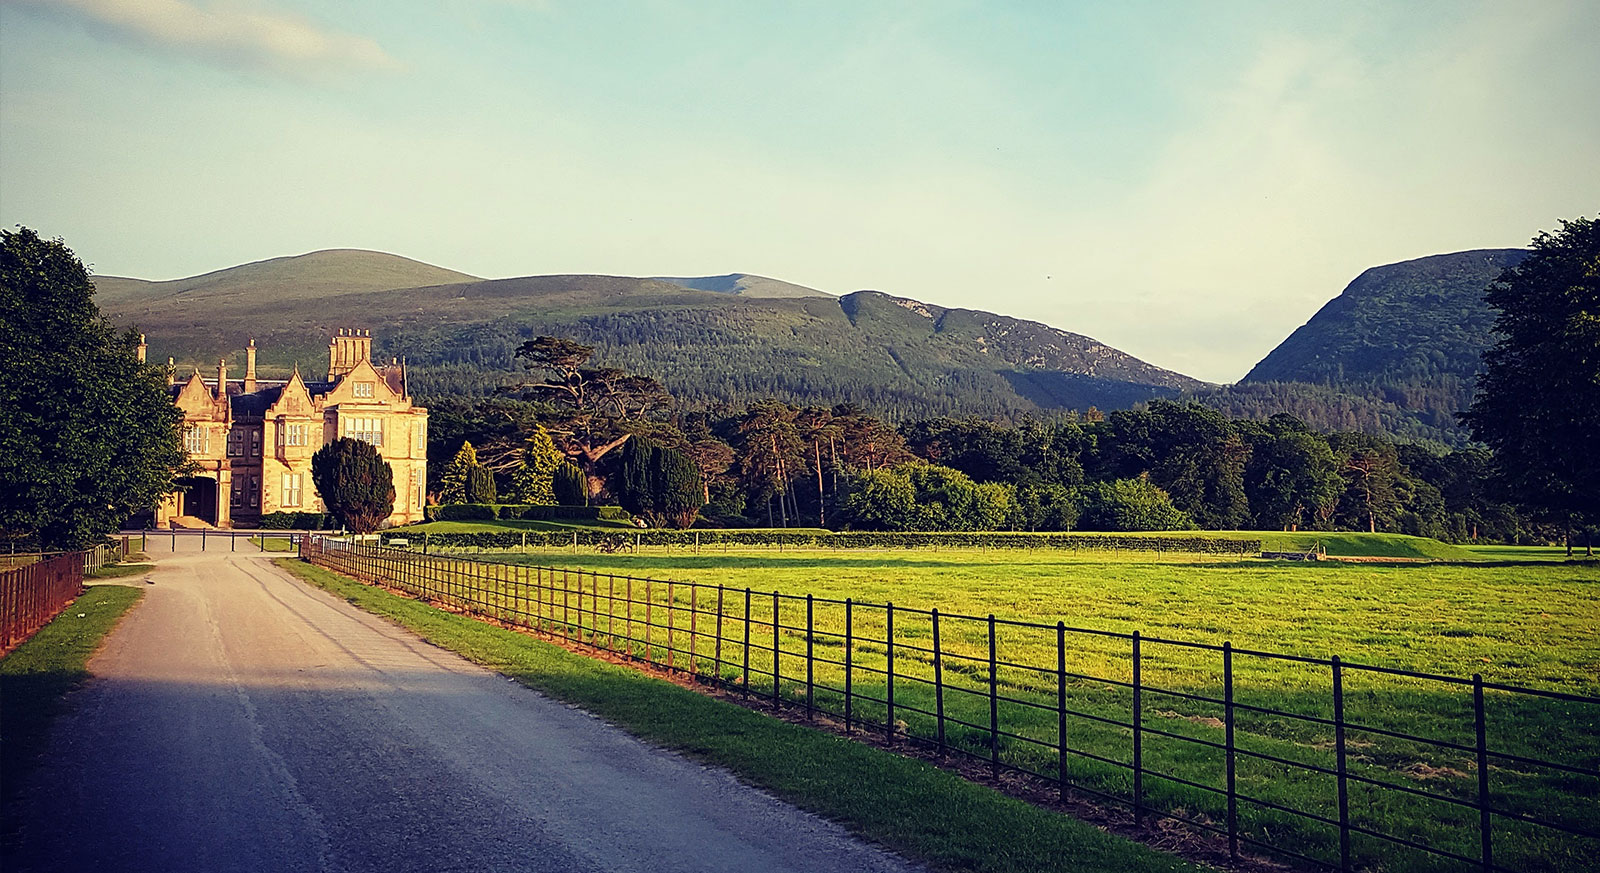 Muckross House and Gardens, Killarney, Co. Kerry